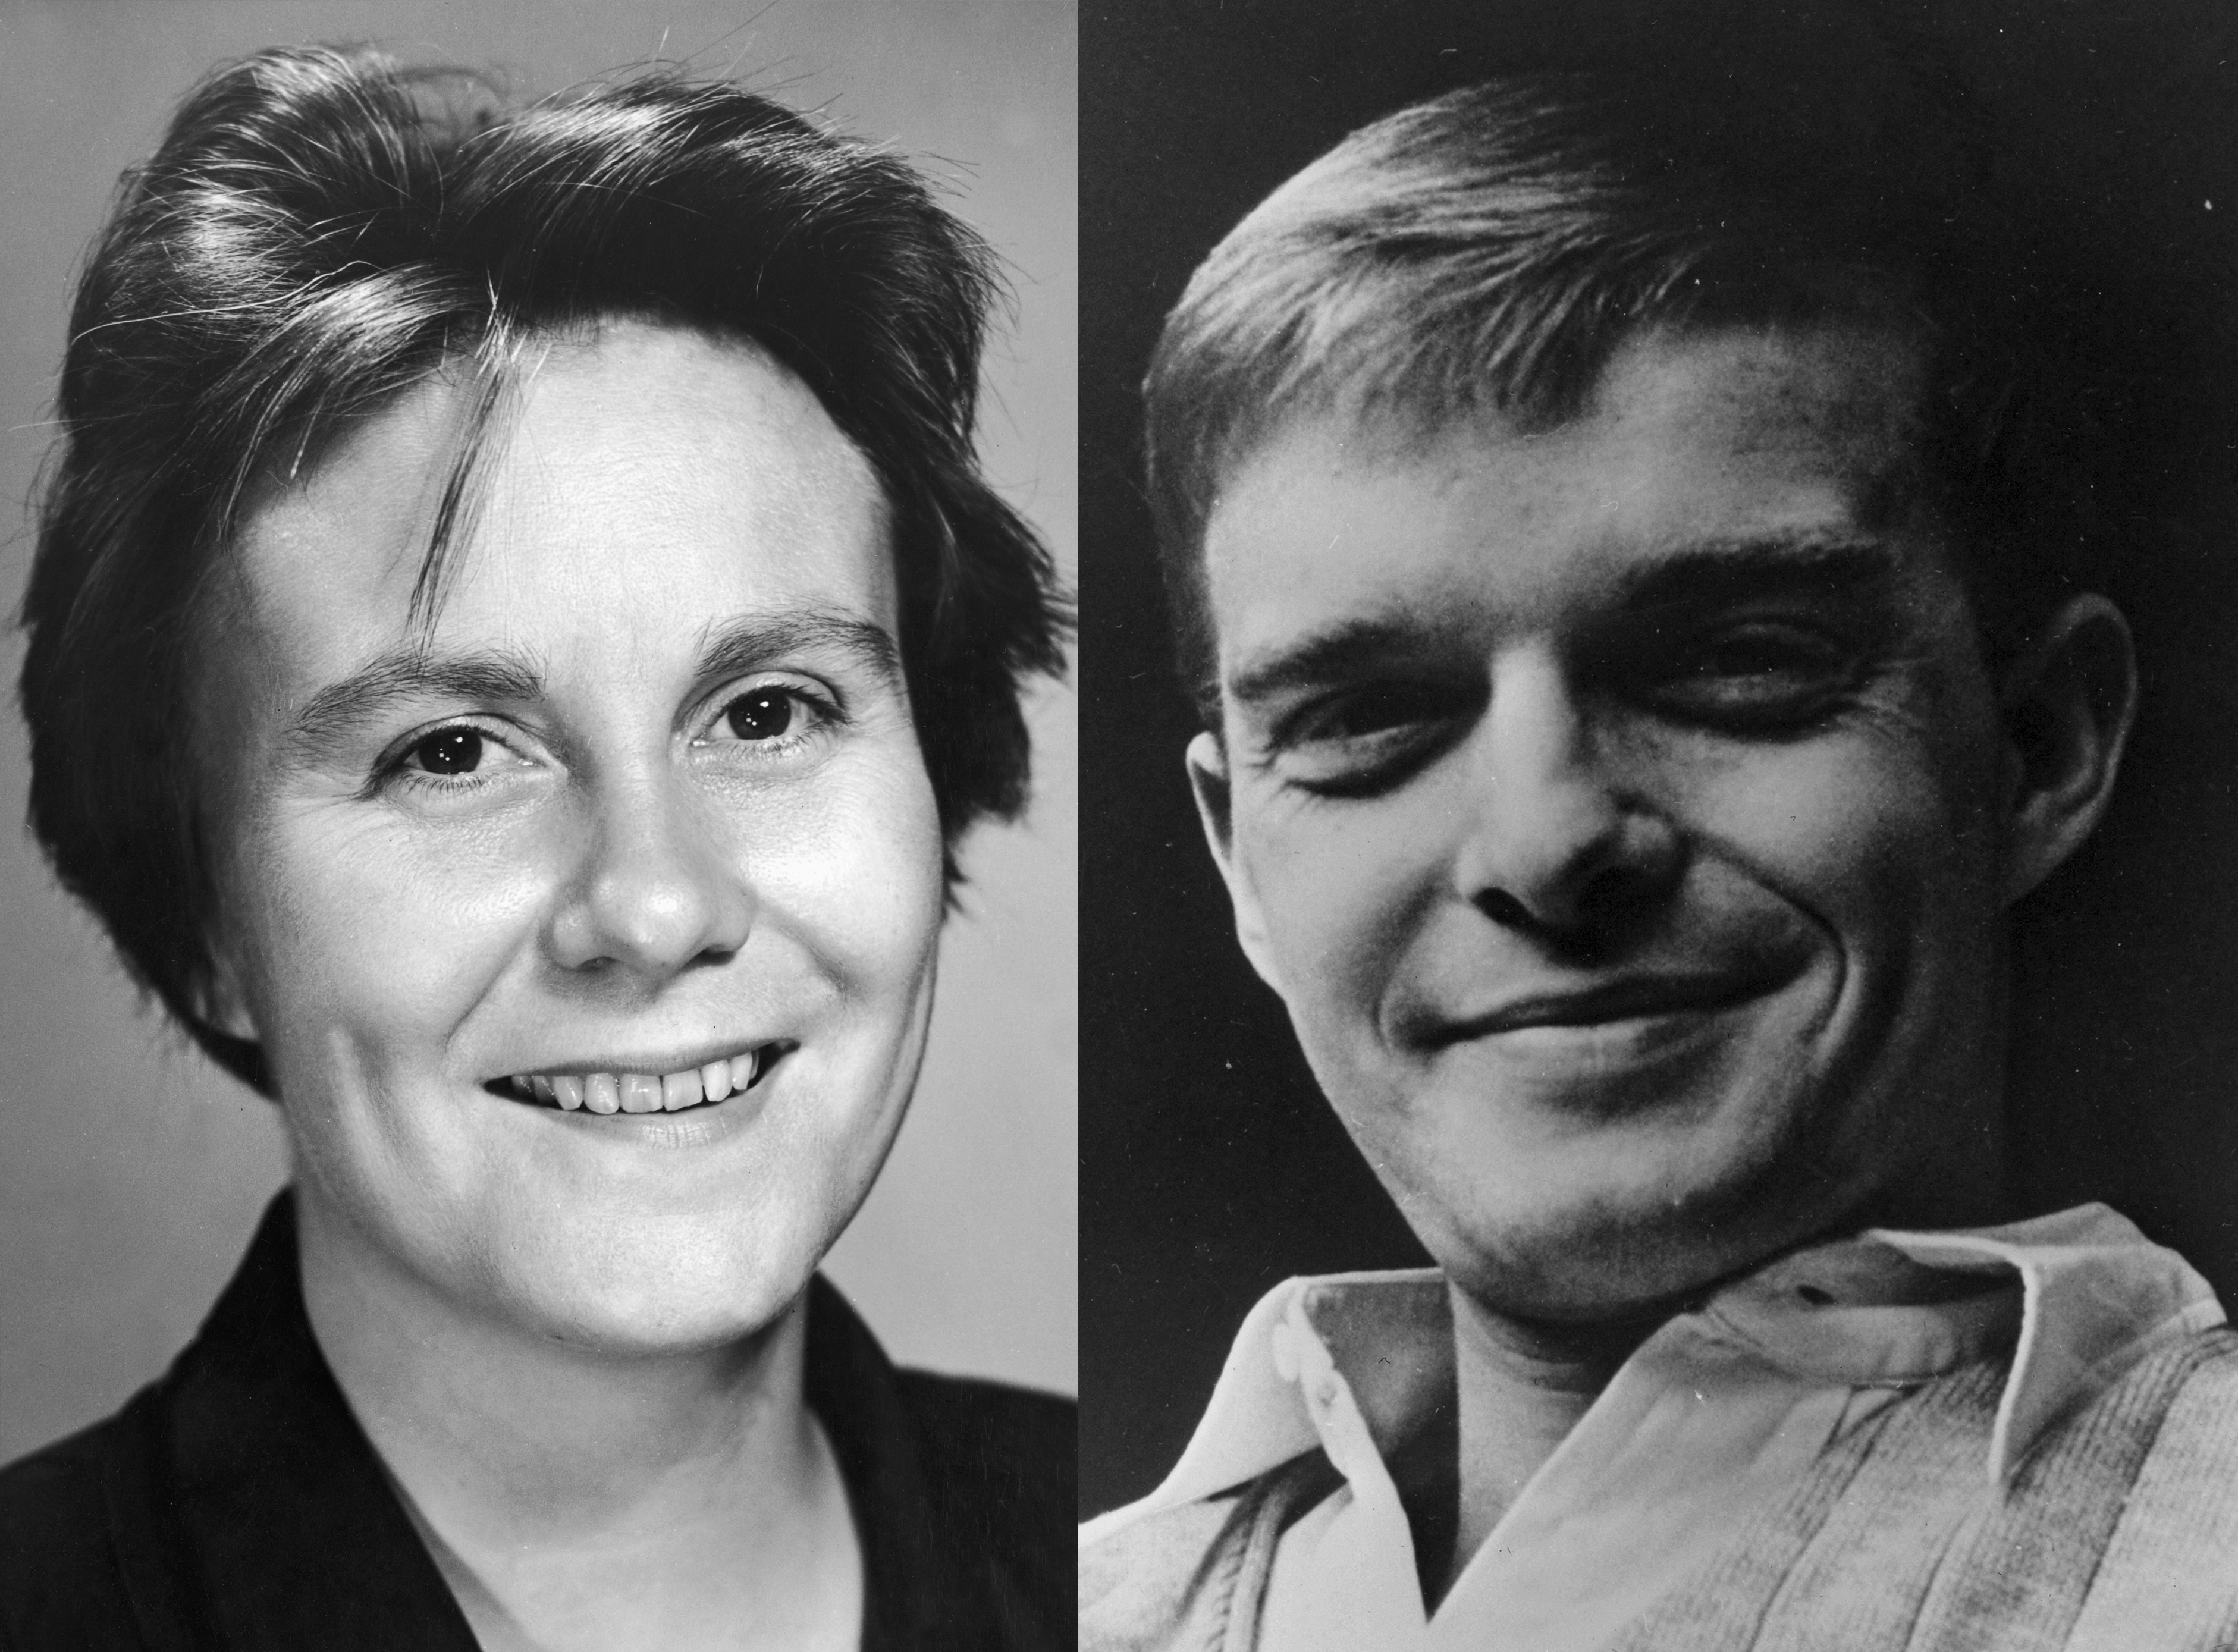 A classic: Harper Lee and Truman Capote. The acclaimed authors were childhood pals in Monroeville, Ala., and rumors (since disproved) circulated for years that he had actually written 'To Kill a Mockingbird.'